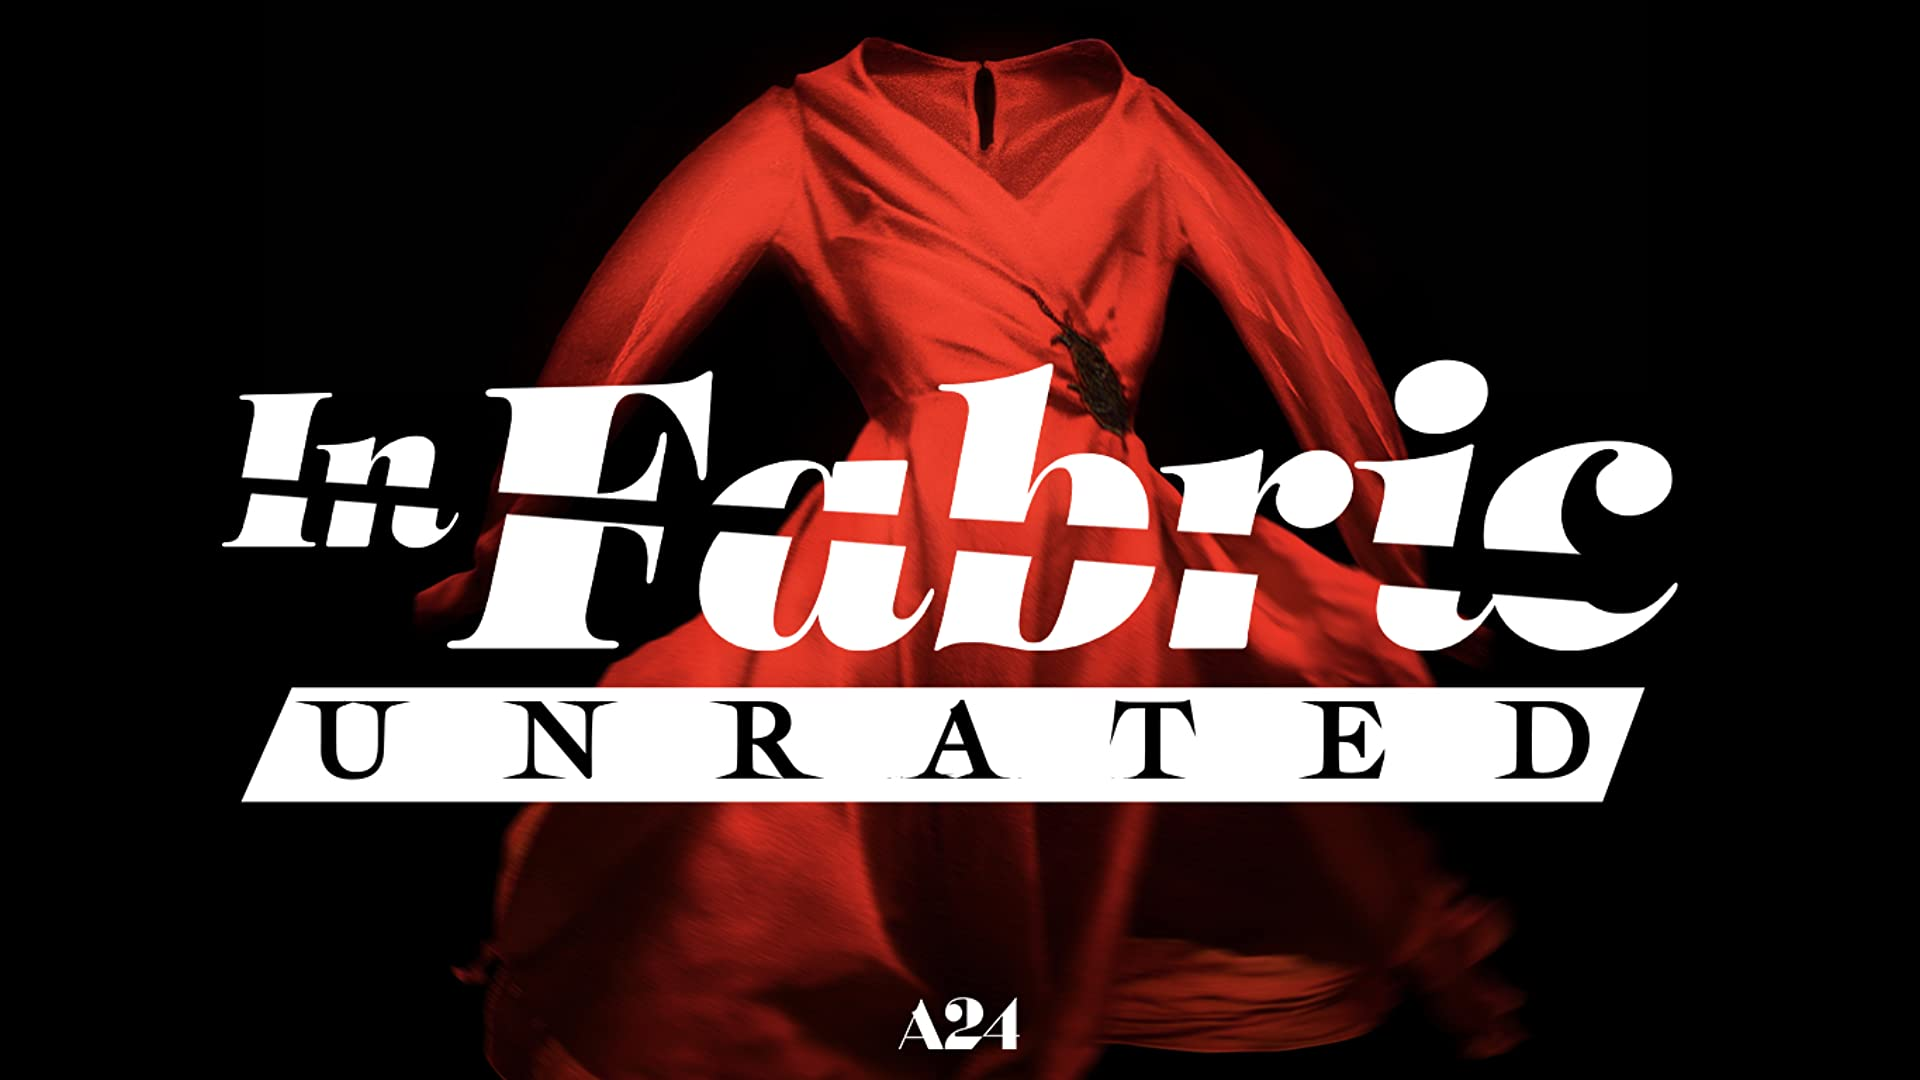 In Fabric (Unrated)